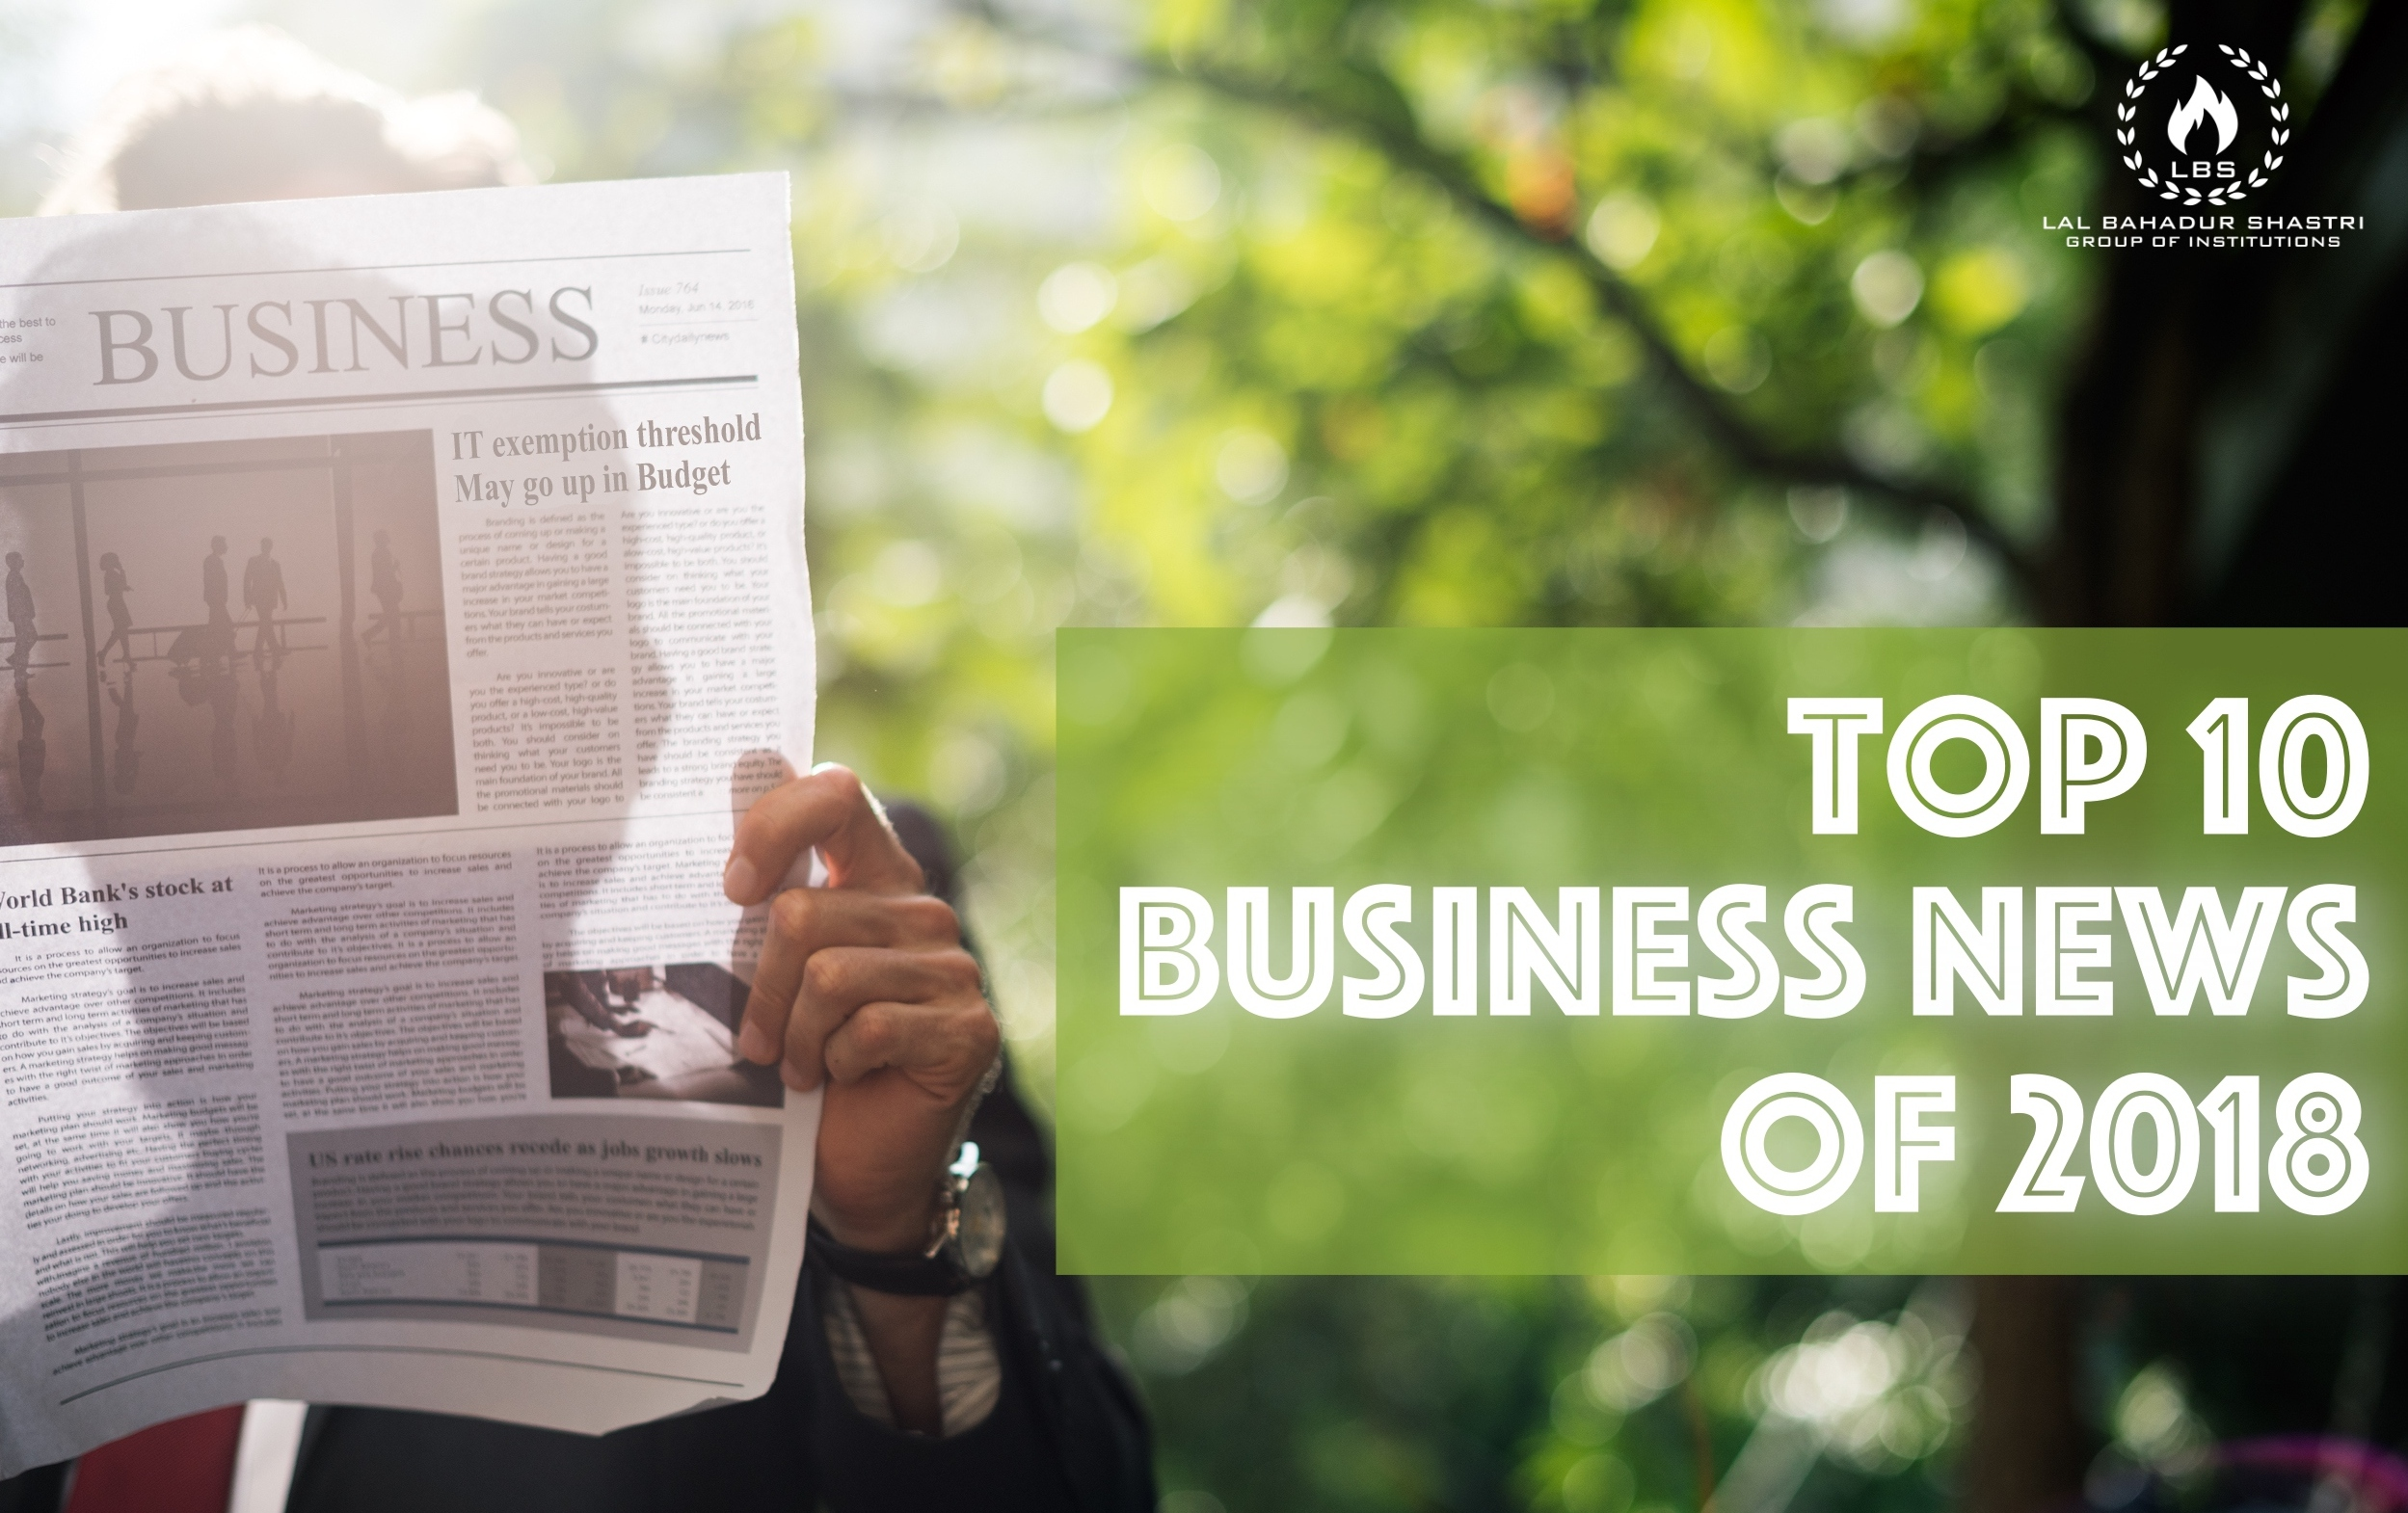 Top 10 Business News